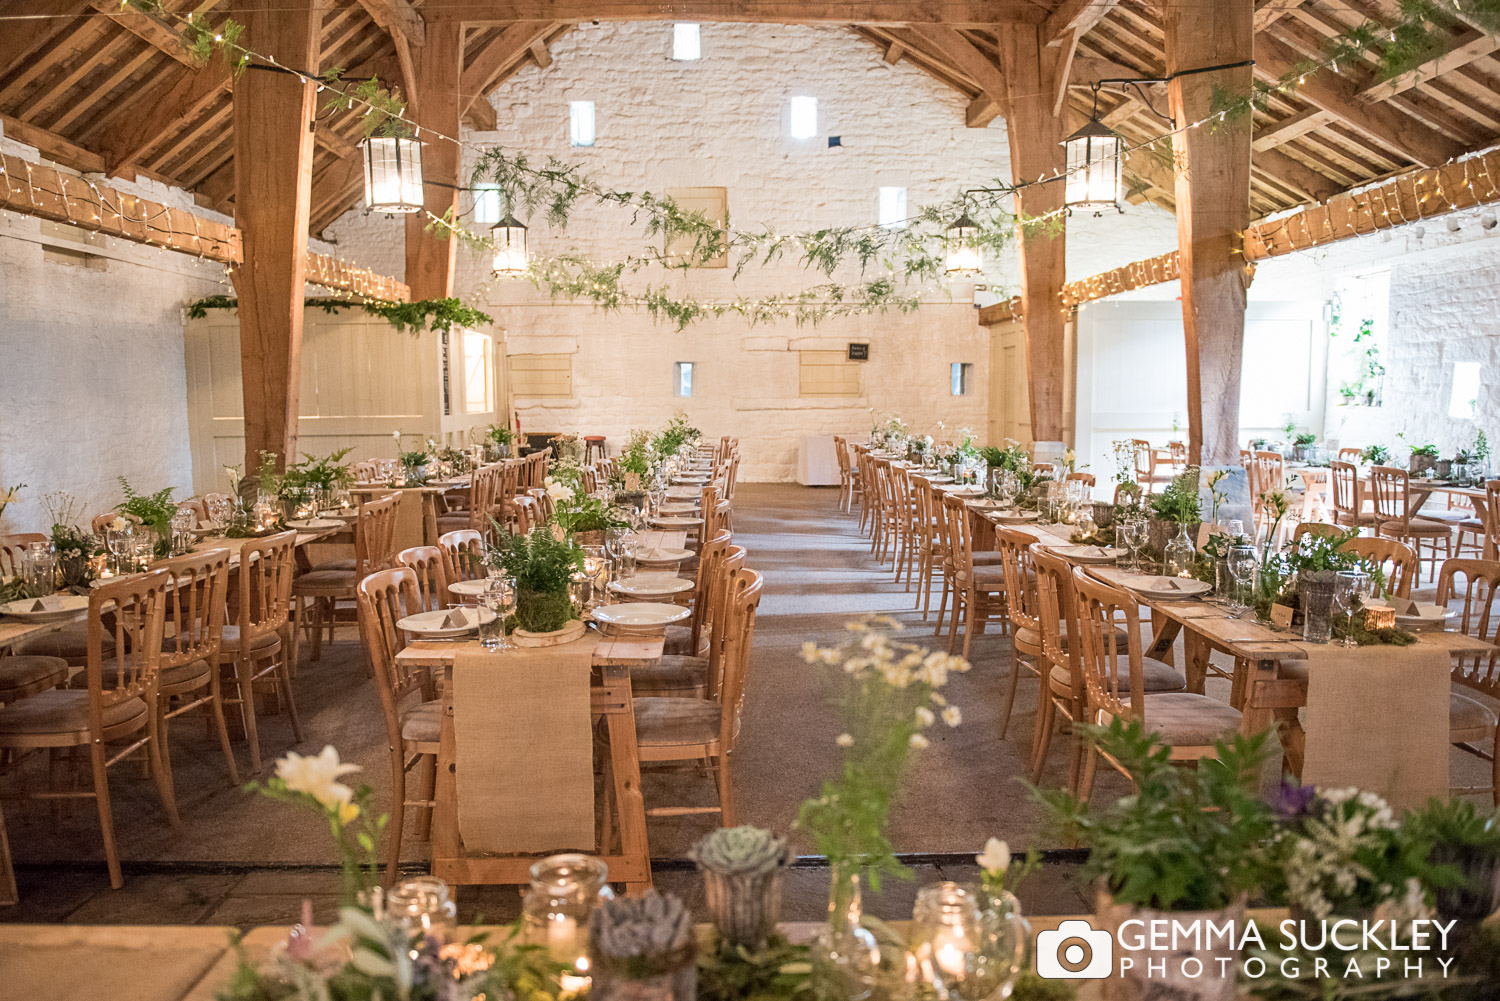 simply-vintage-events-at-east-riddlesden-hall©gemmasuckleyphotography.JPG